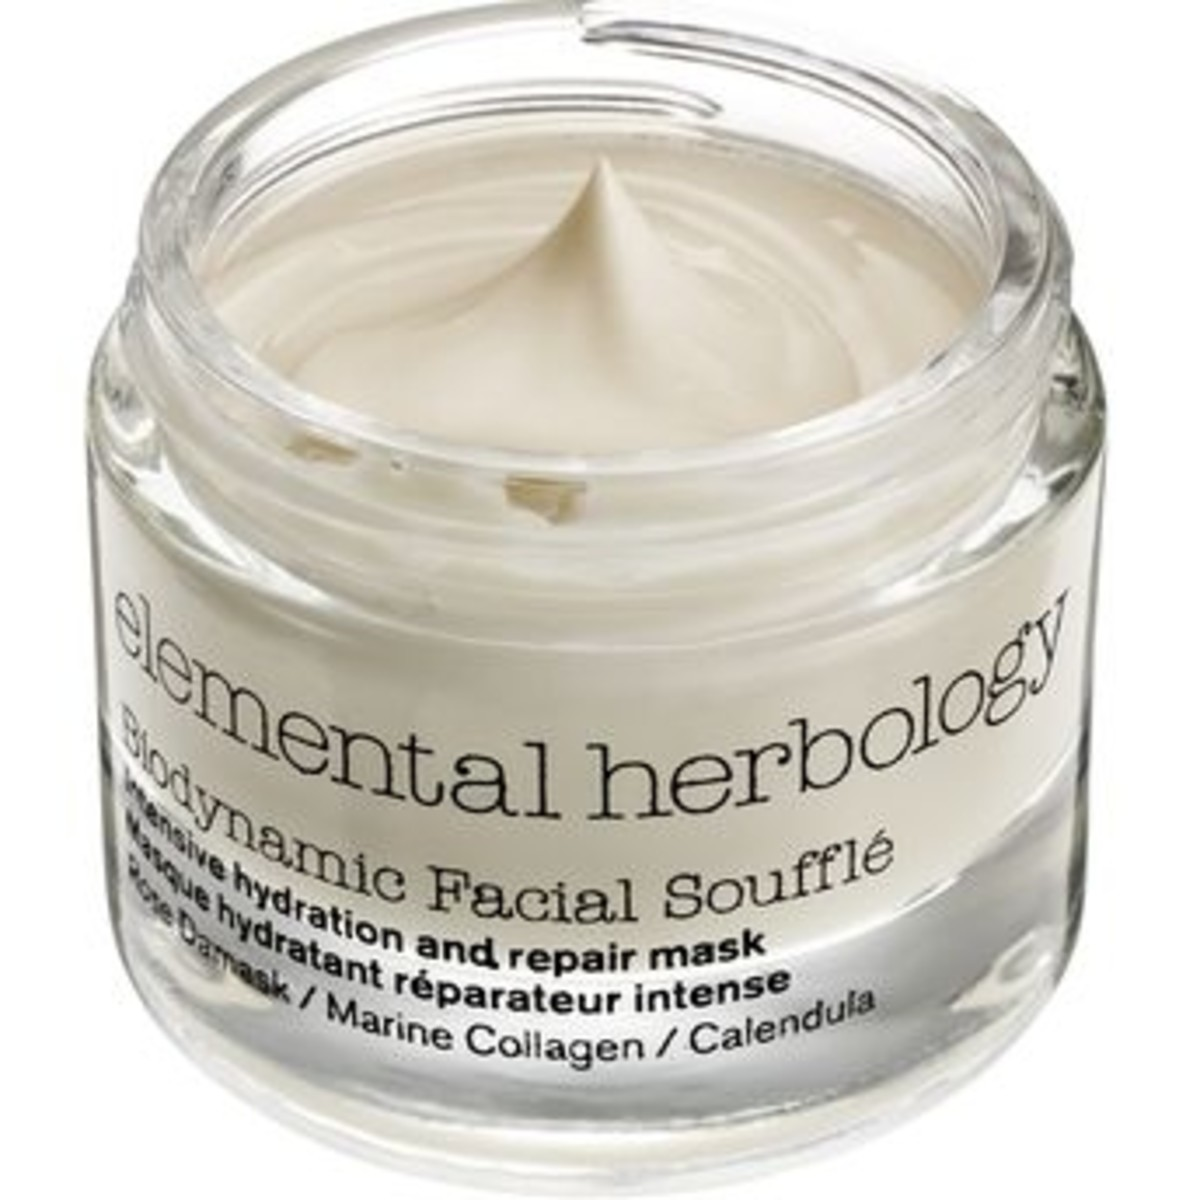 Elemental Herbology Biodynamic Facial Souffle